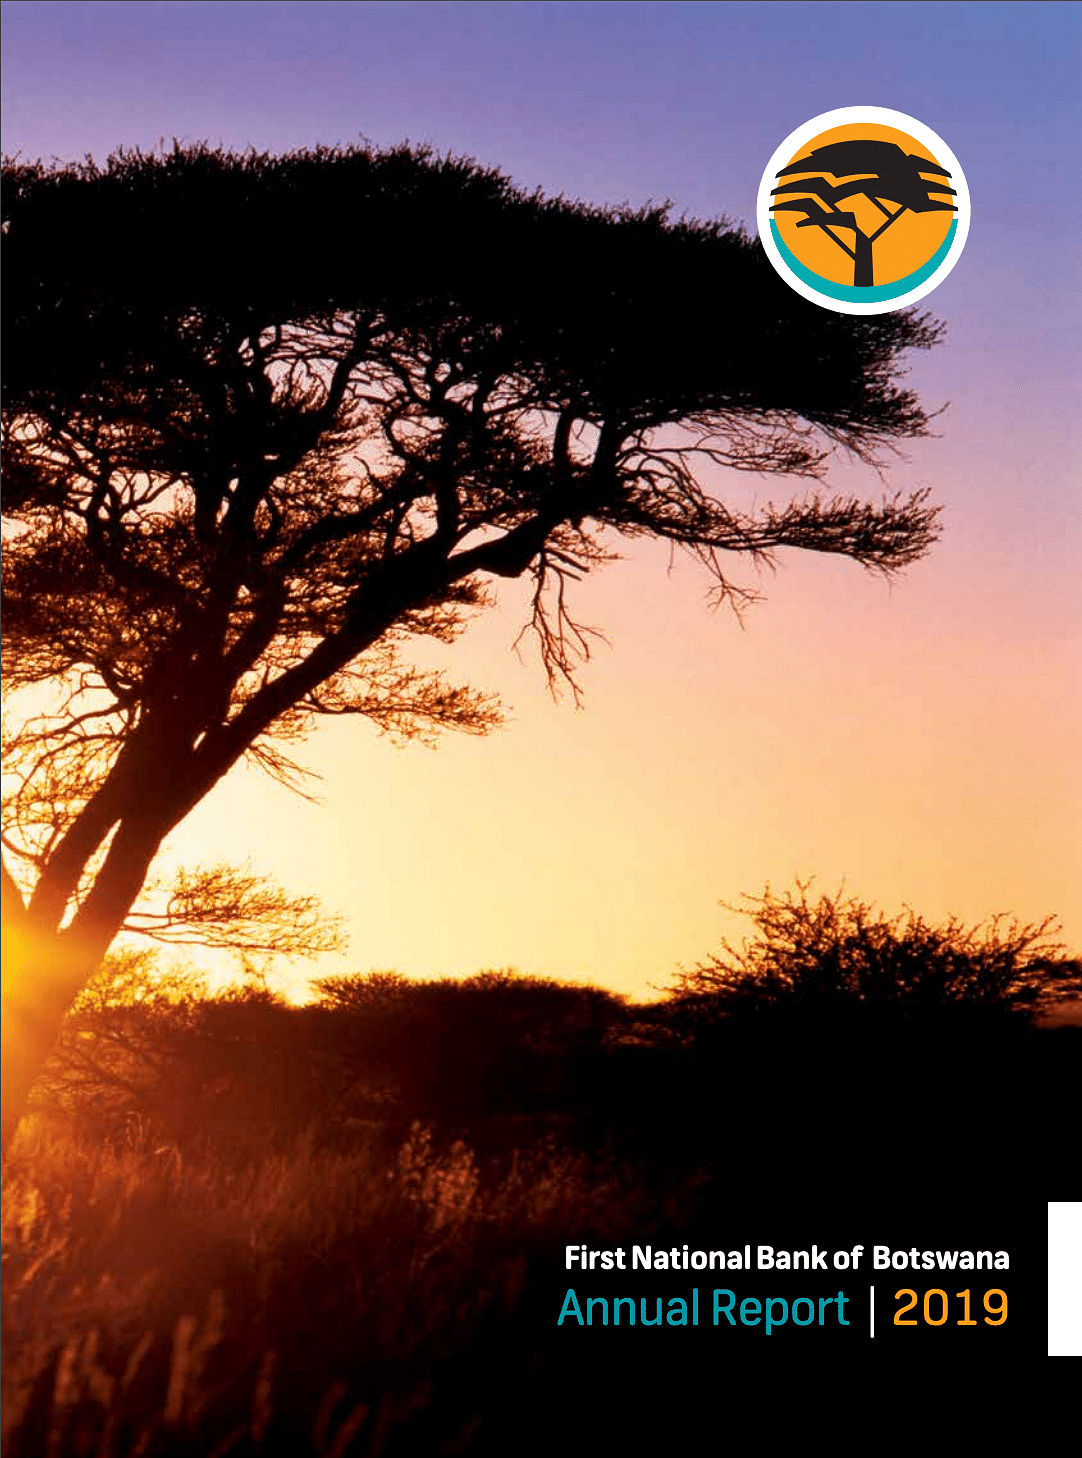 FNBB Annual Report 2019 cover